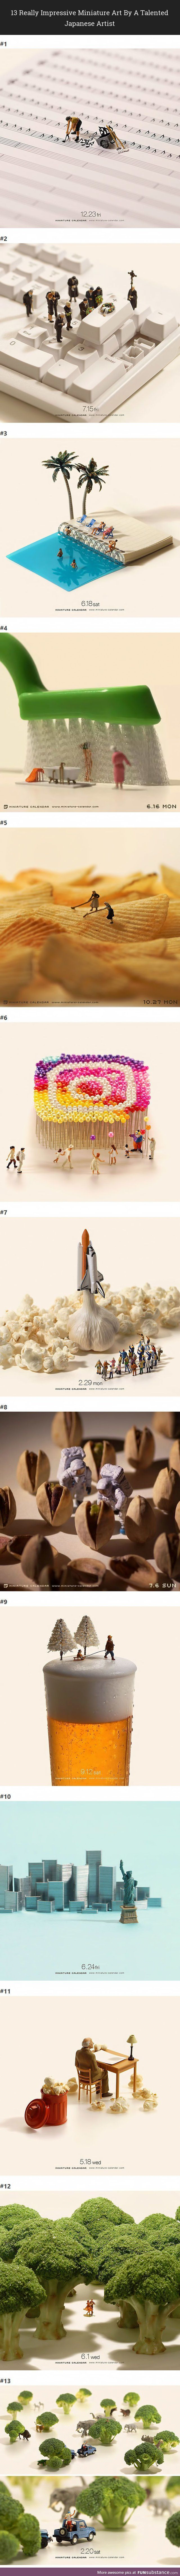 Japanese photographer, Tatsuya Tanaka, explores life in miniature with these meticulous images.